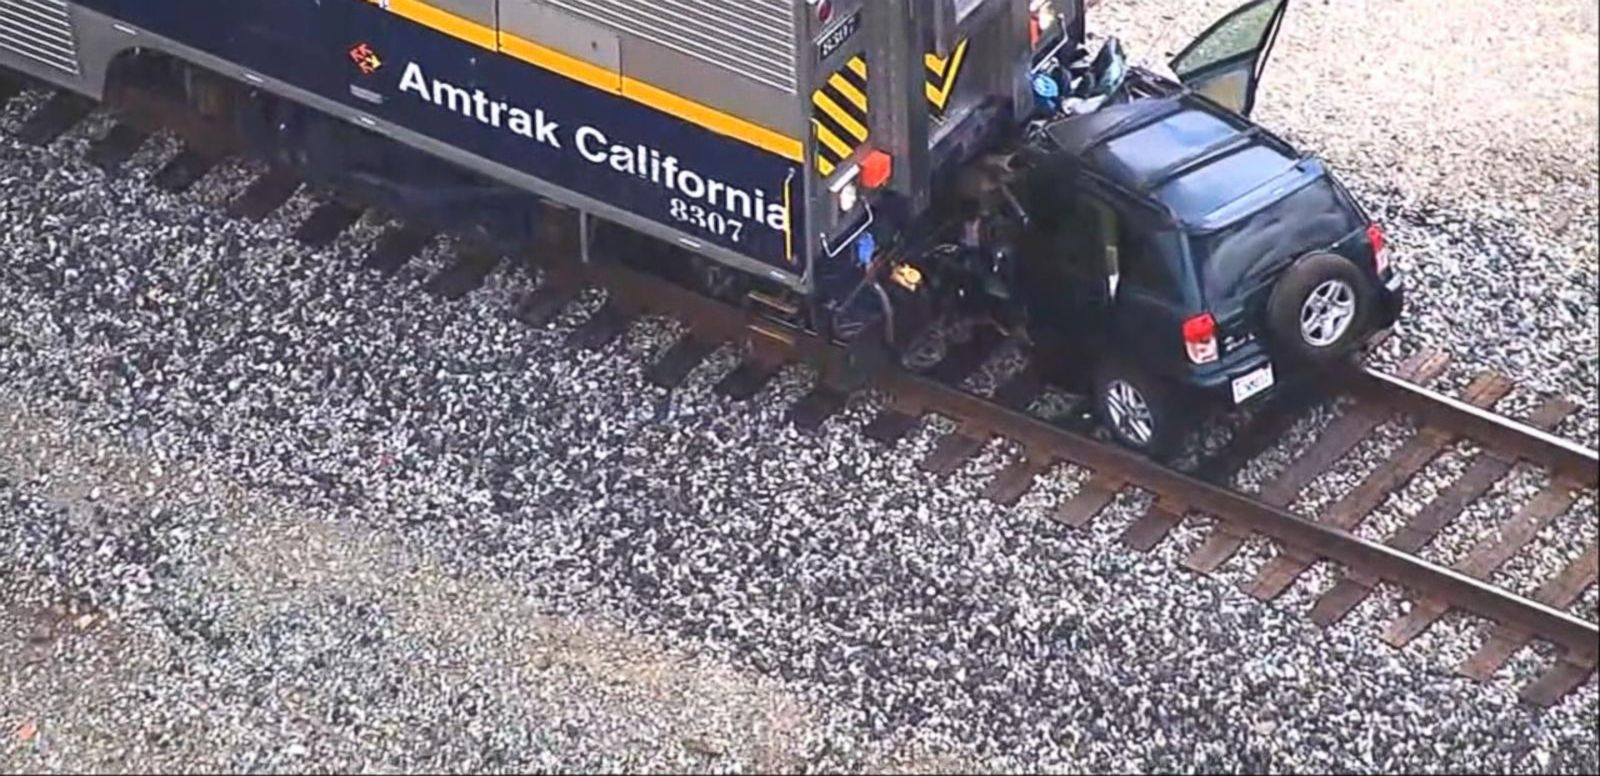 The crash was in San Leandro, on the eastern shore of the San Francisco bay.